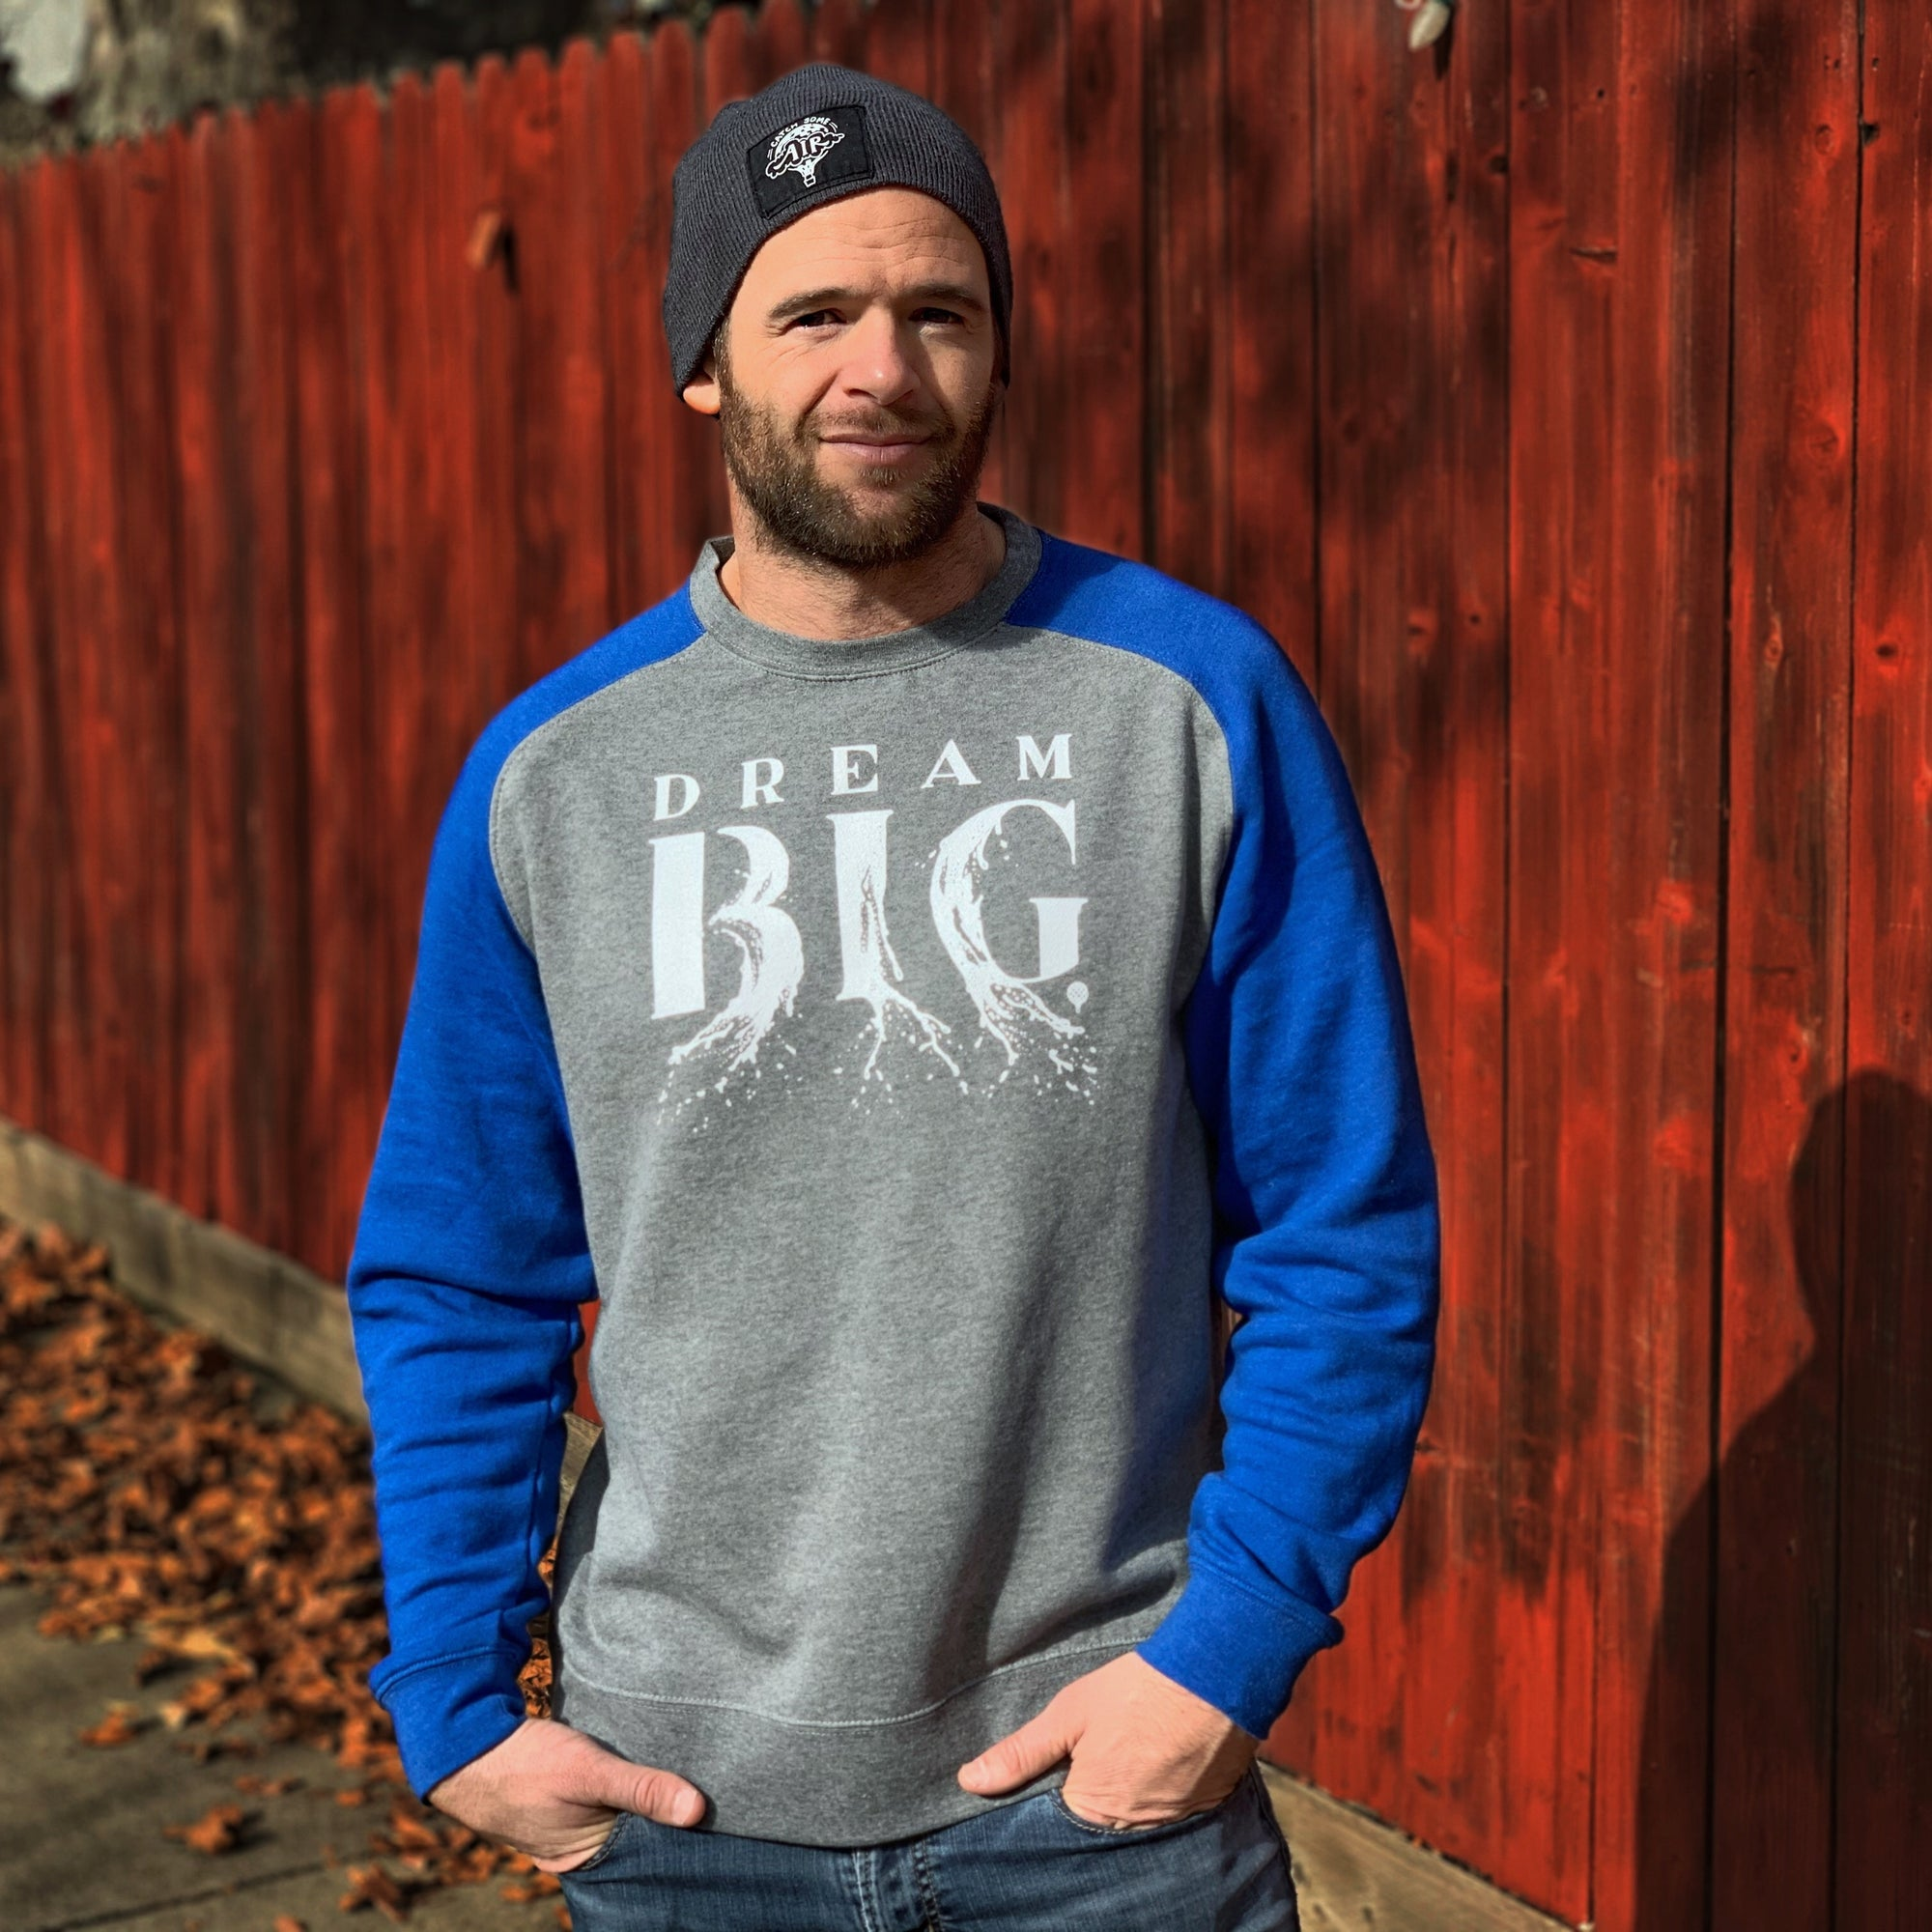 DREAM BIG | unisex raglan sweatshirt | gray/royal blue